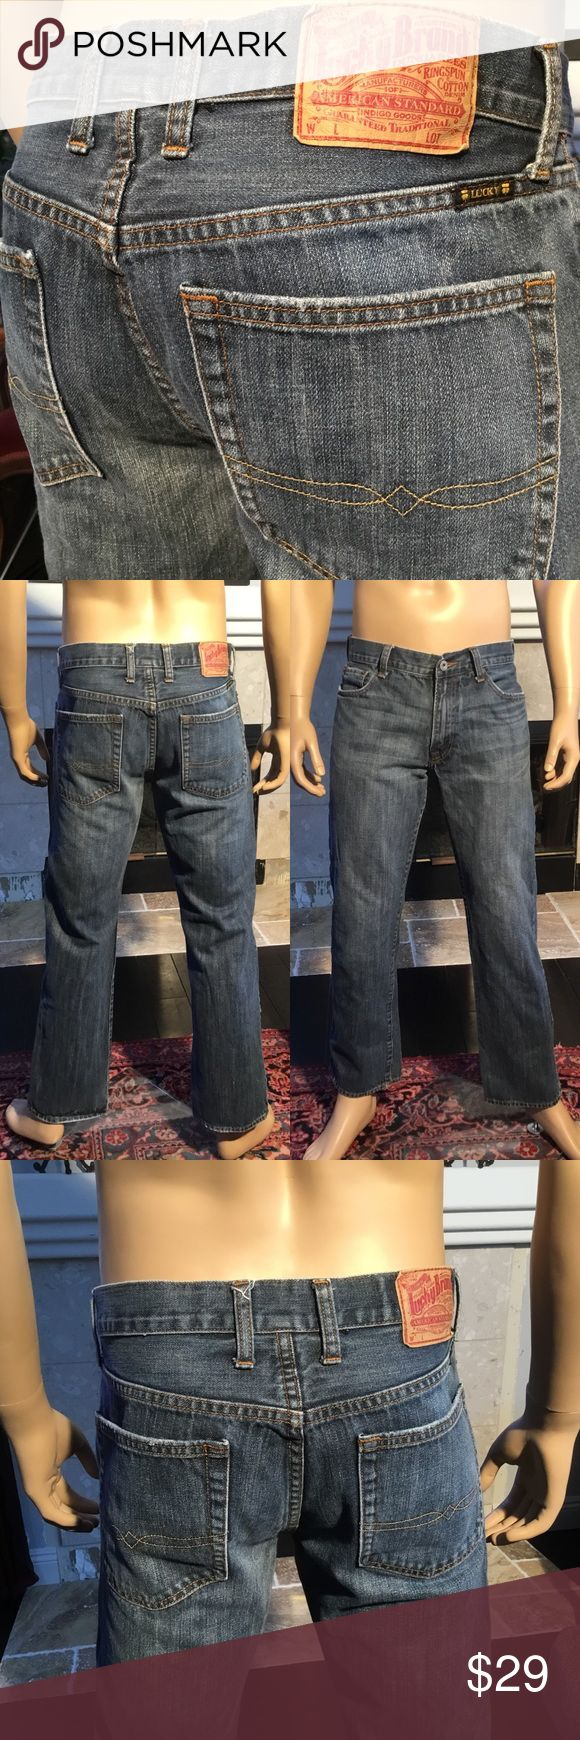 Lucky Brand Dungarees Jeans Straight 32  (987) Lucky Brand Dungarees Jeans Straight  Men's Size 32 X 30.5 (987) 100% cotton. Approximate measurements are inseam 30.5, waist 16.5 EUC  From a smoke free home (987) Lucky Brand Jeans Straight